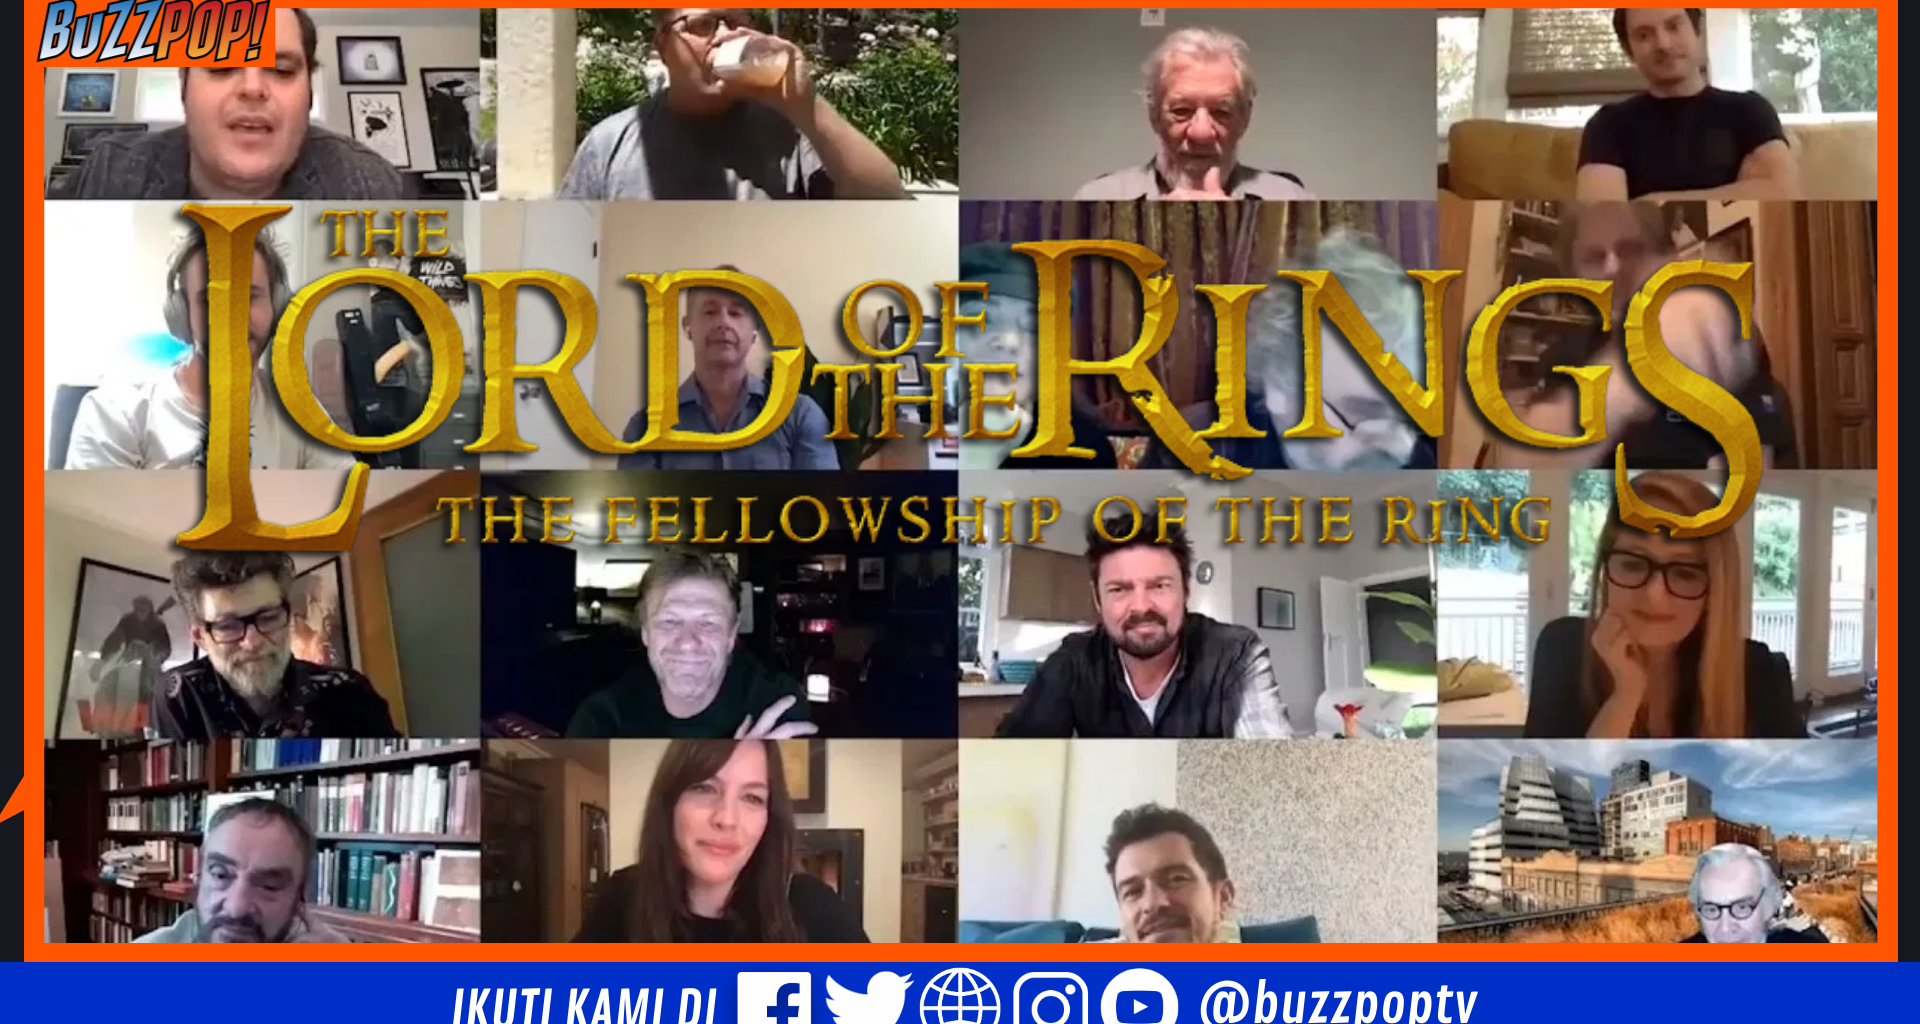 Reunited Apart THE LORD OF THE RINGS Cast Reunion